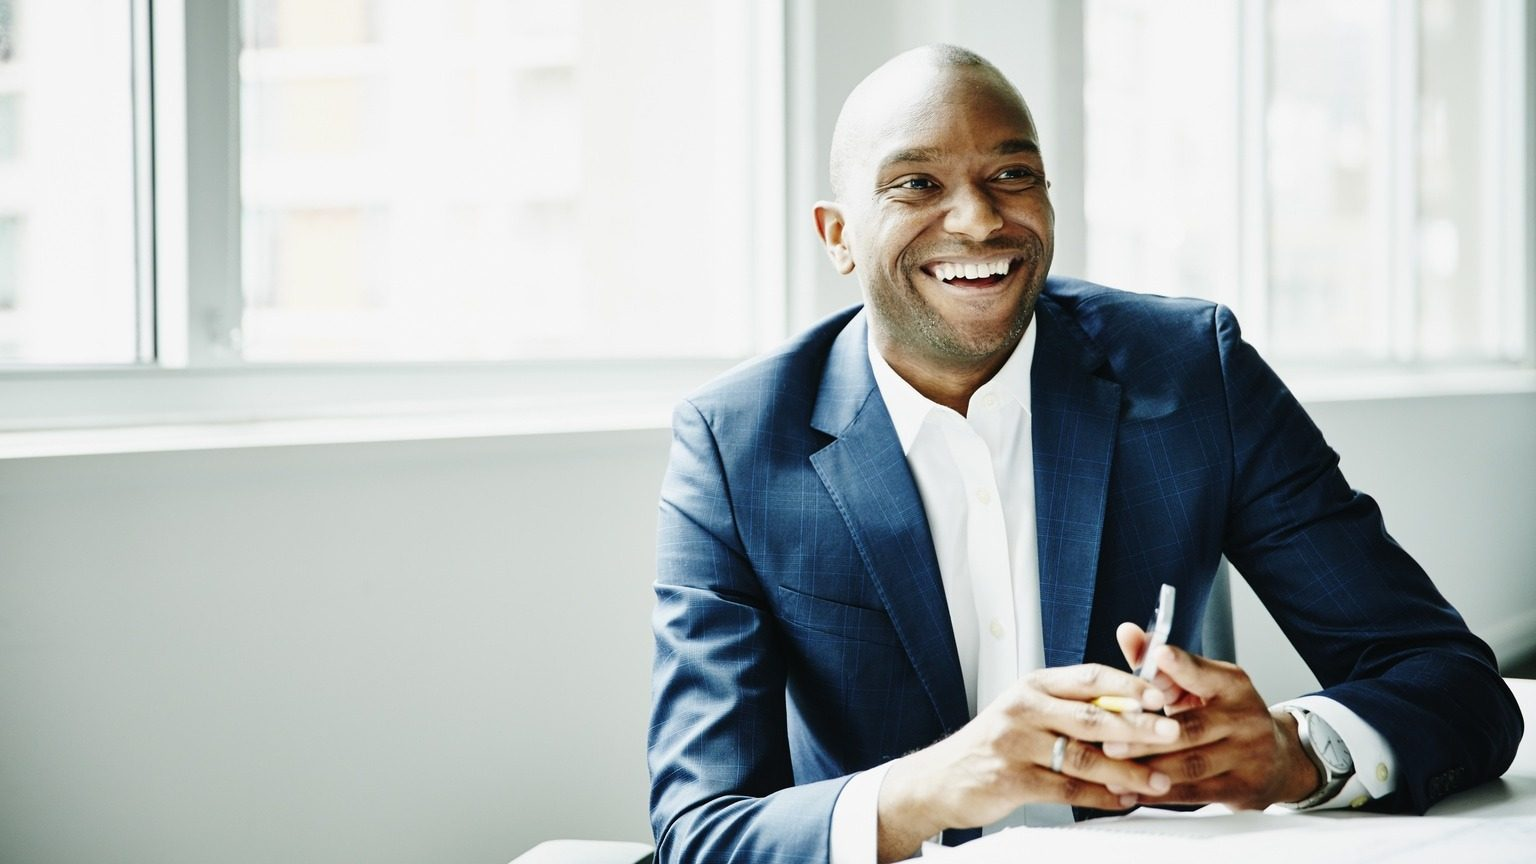 Smiling businessman sitting at a table